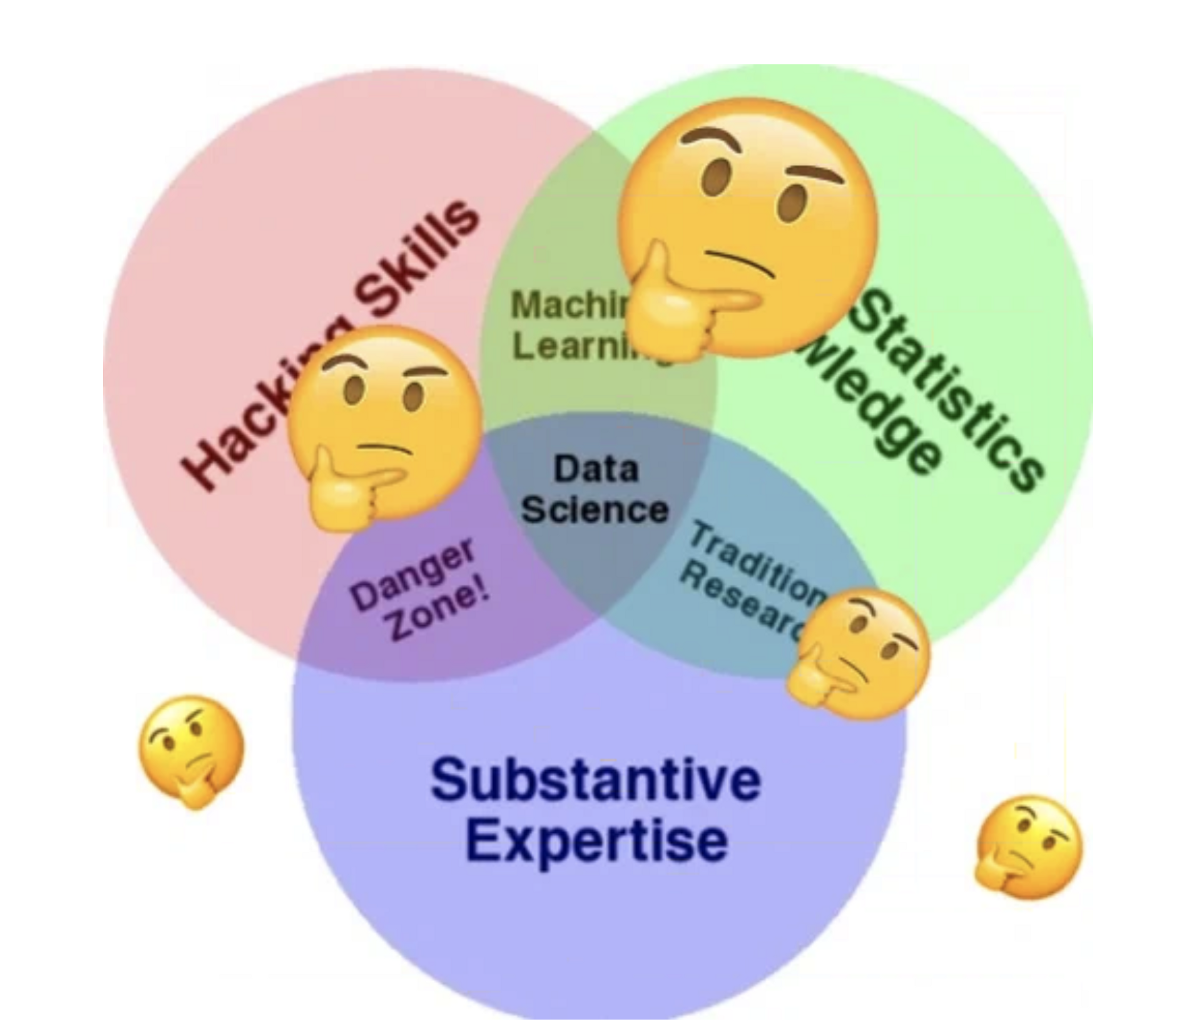 Why The Data Science Venn Diagram Is Misleading